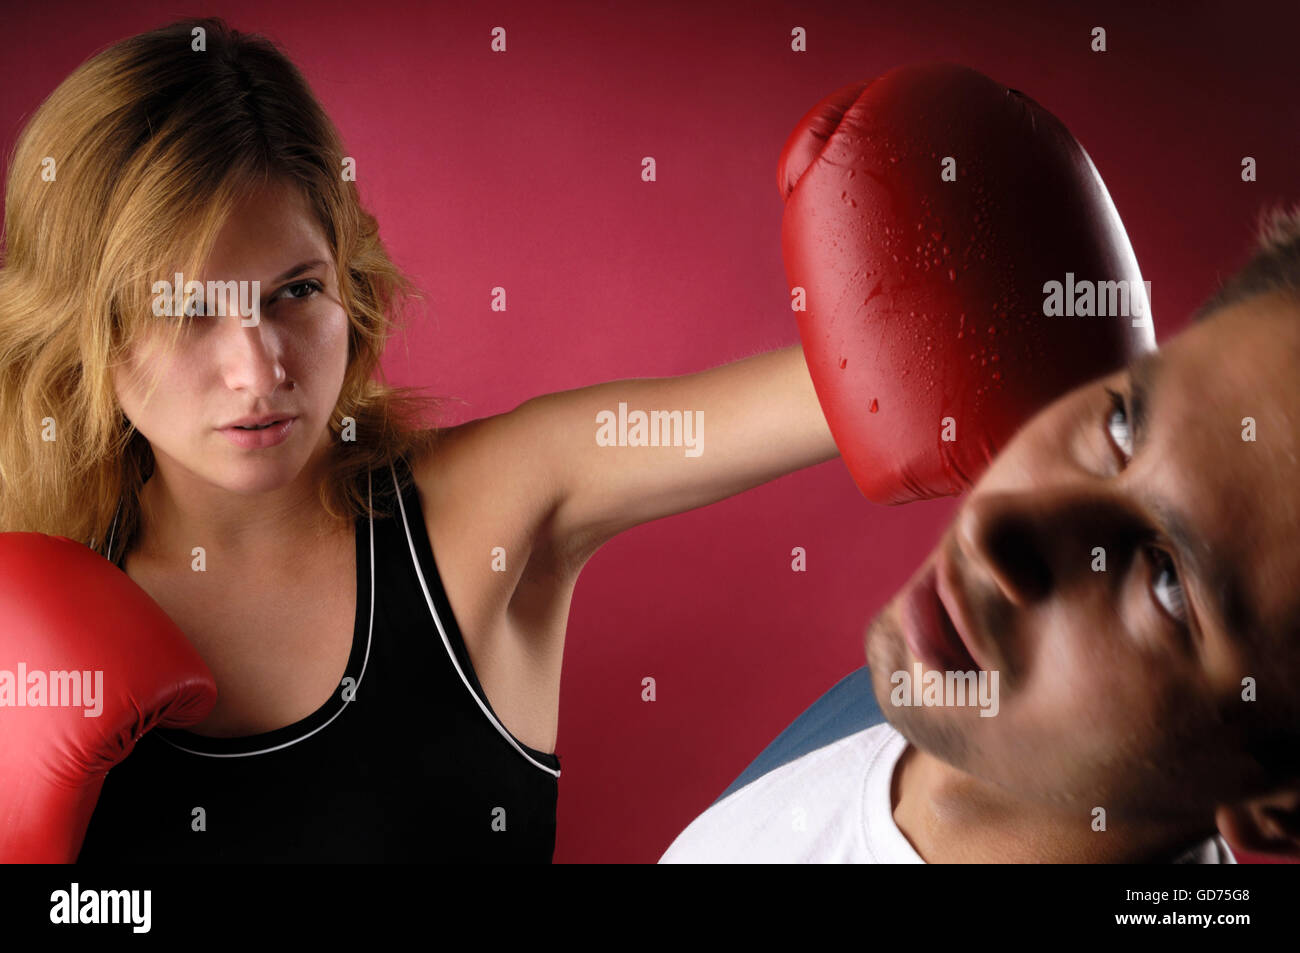 Young female boxer punching a young man on his face, knocking him down - Stock Image